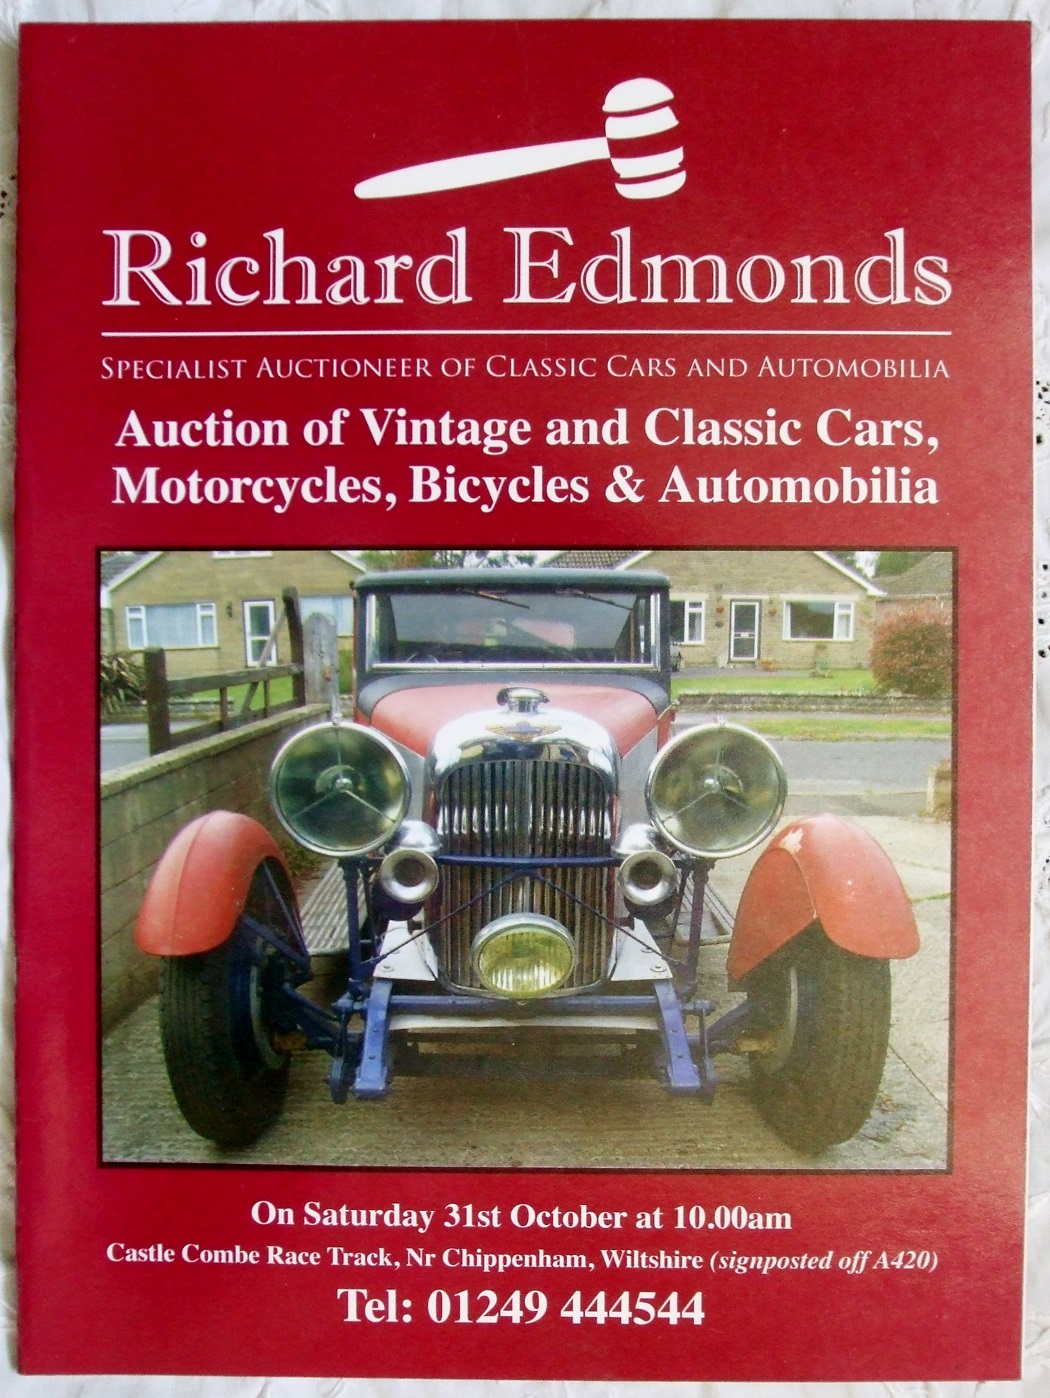 RE Vintage Classic Cars Motorcycles Bicycles Automobilia CC 31. 10. 2009